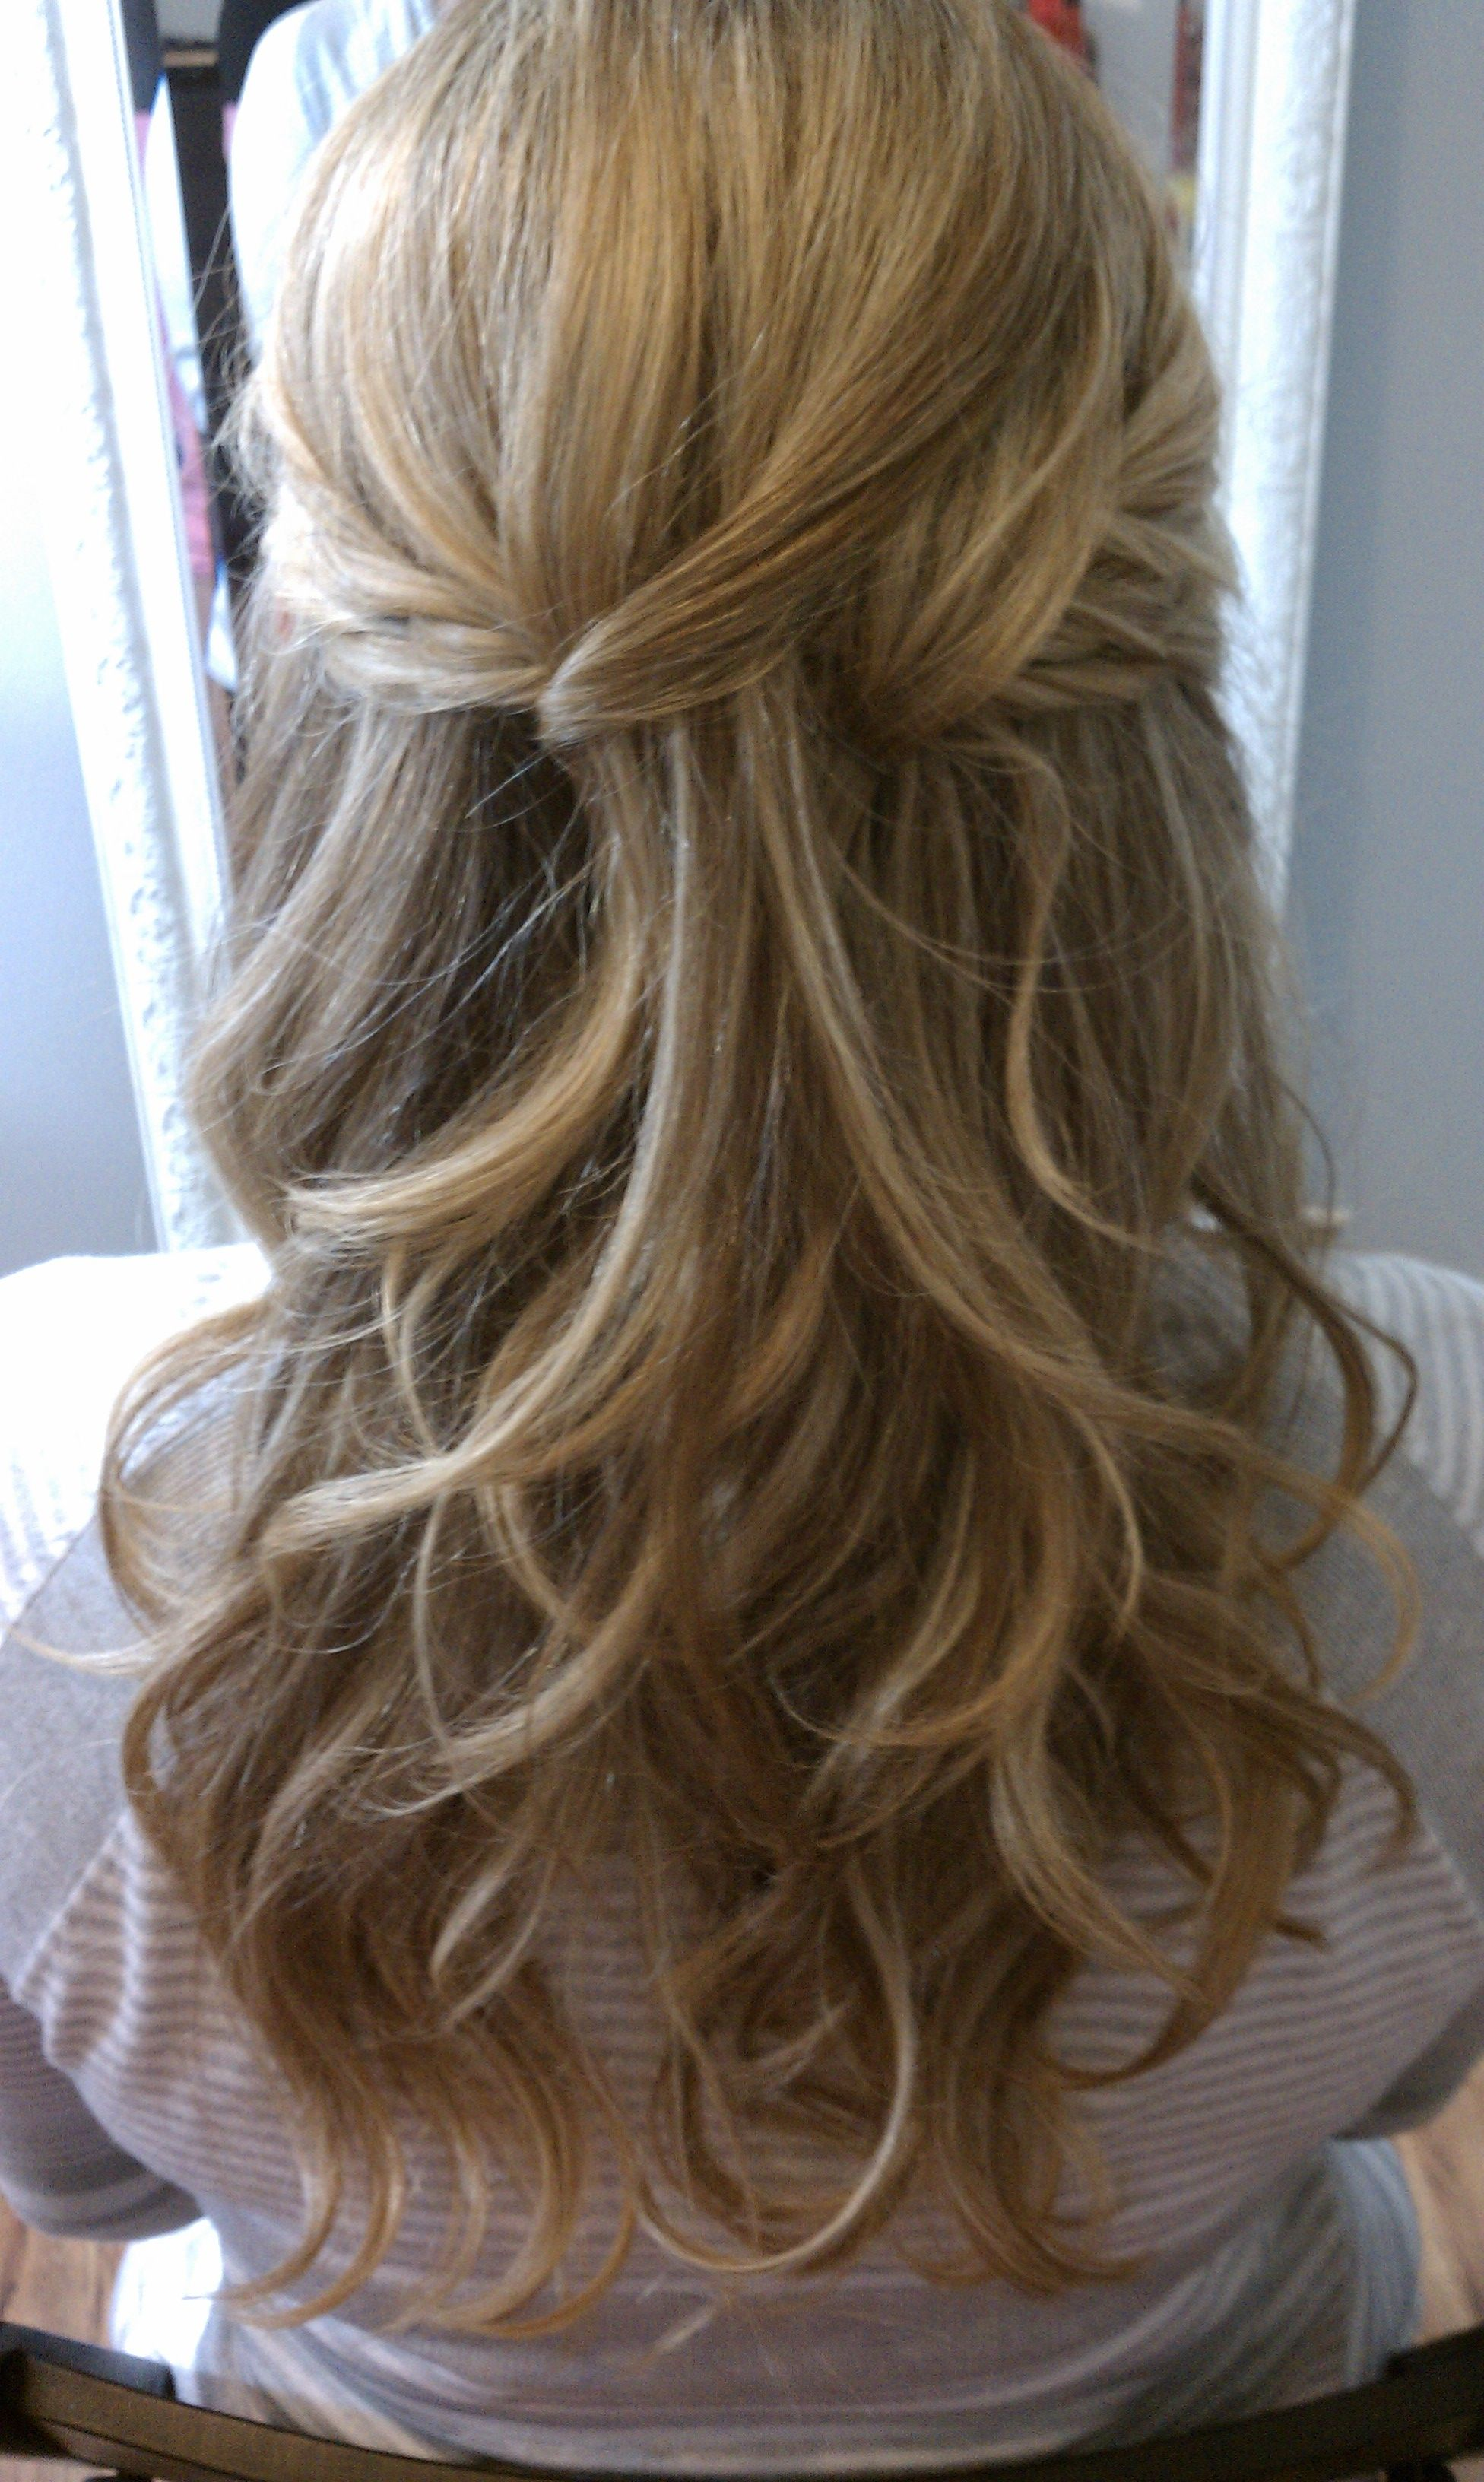 Bridal Hair Half Up Half Down Very Close To What I Want To Do